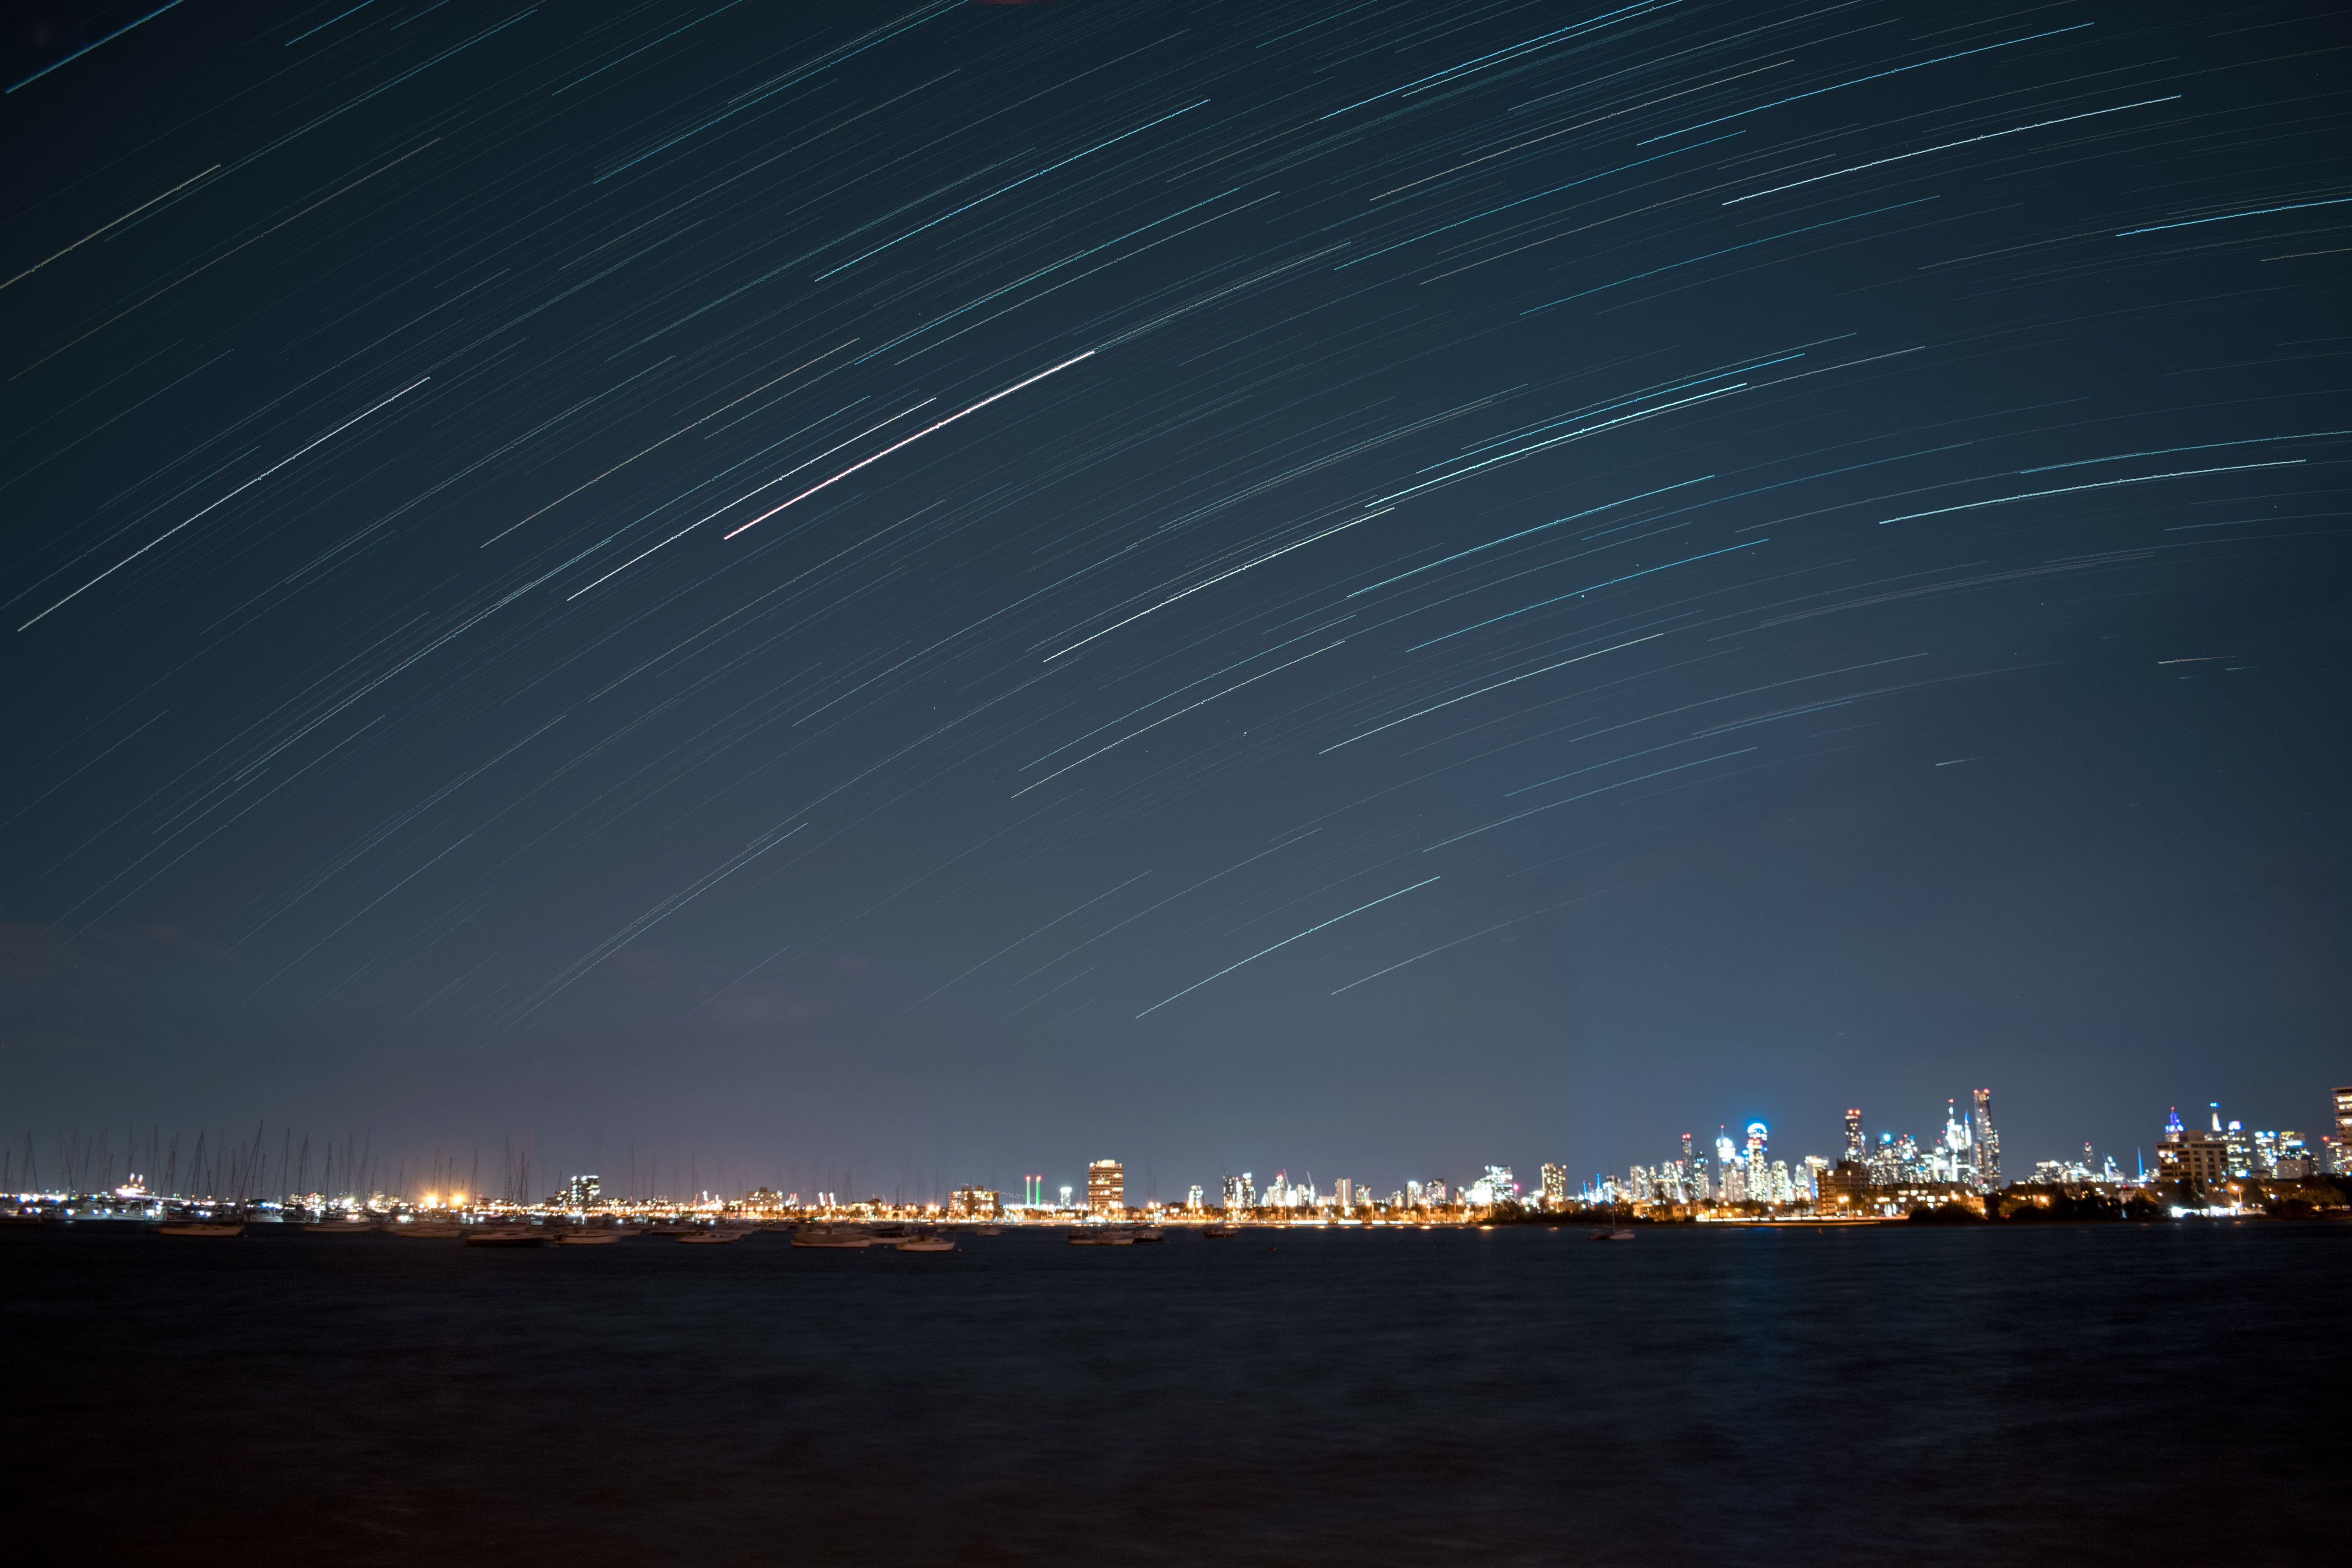 time lapse photography of meteor shower above cityscape